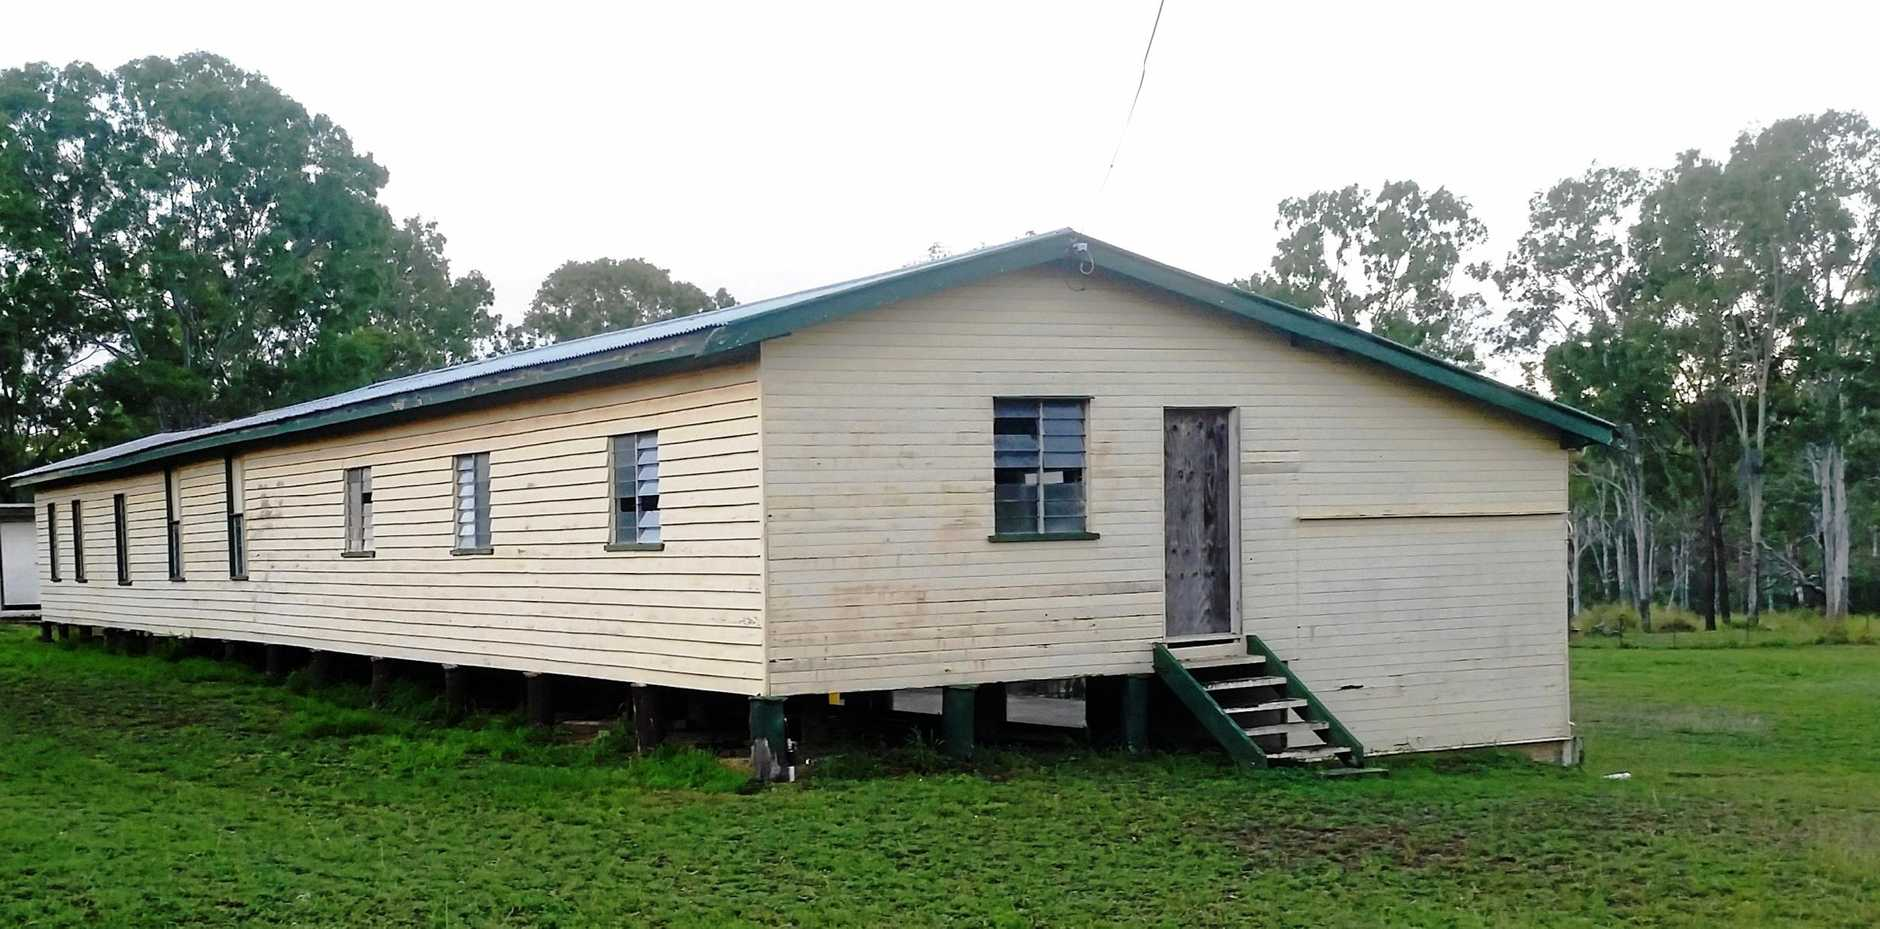 Camp Akuna Pikes Crossing has received extra funding after celebrating its 50th birthday in December.